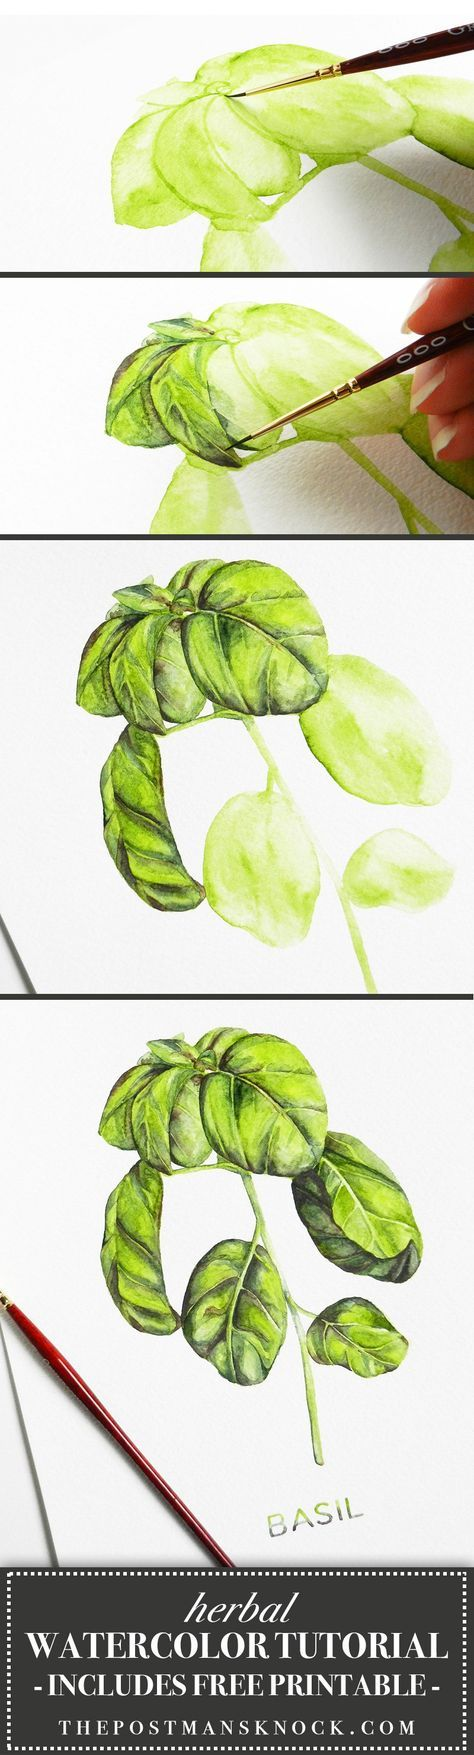 Herbal Watercolor Tutorial | The Postman's Knock